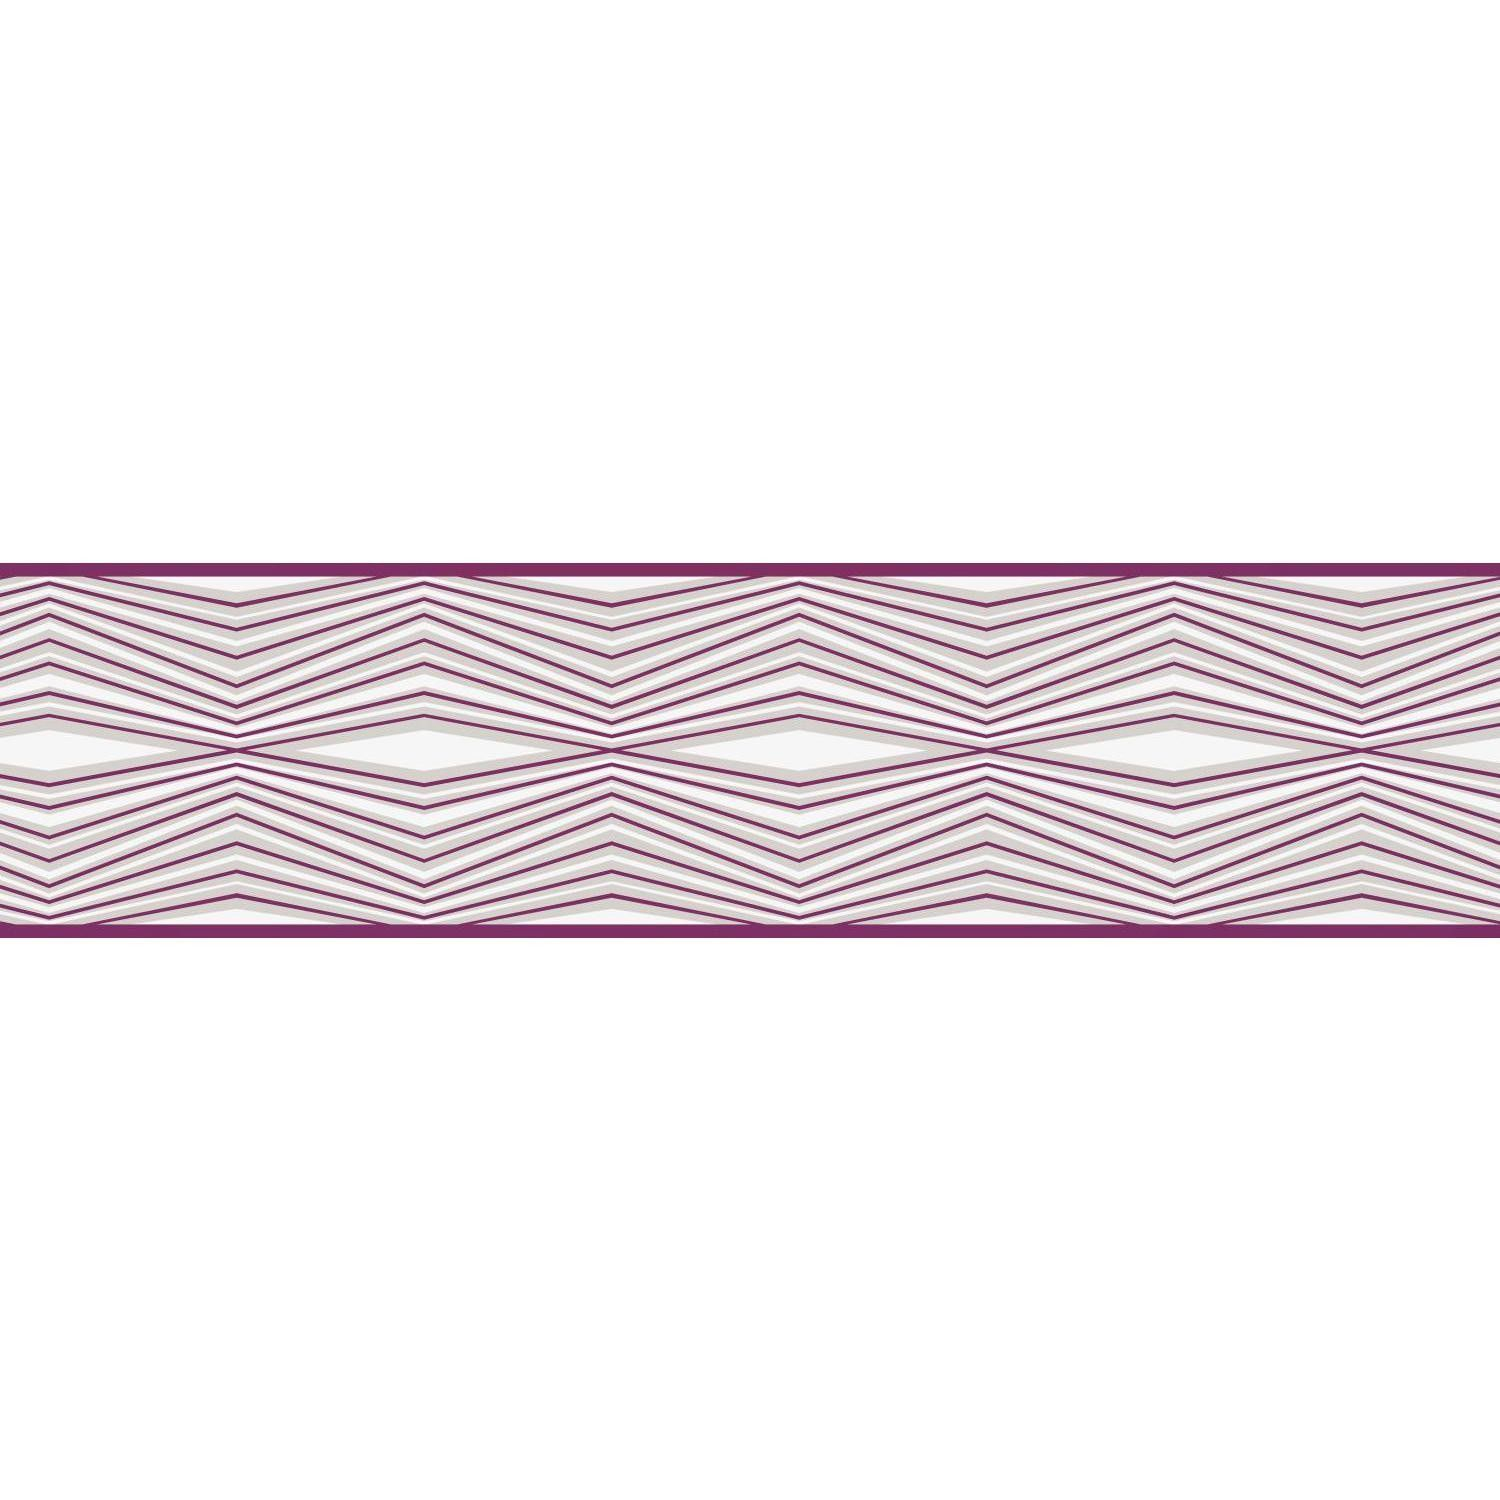 "Portfolio II Optical Illusion 15' x 6"" Geometric Border Wallpaper"